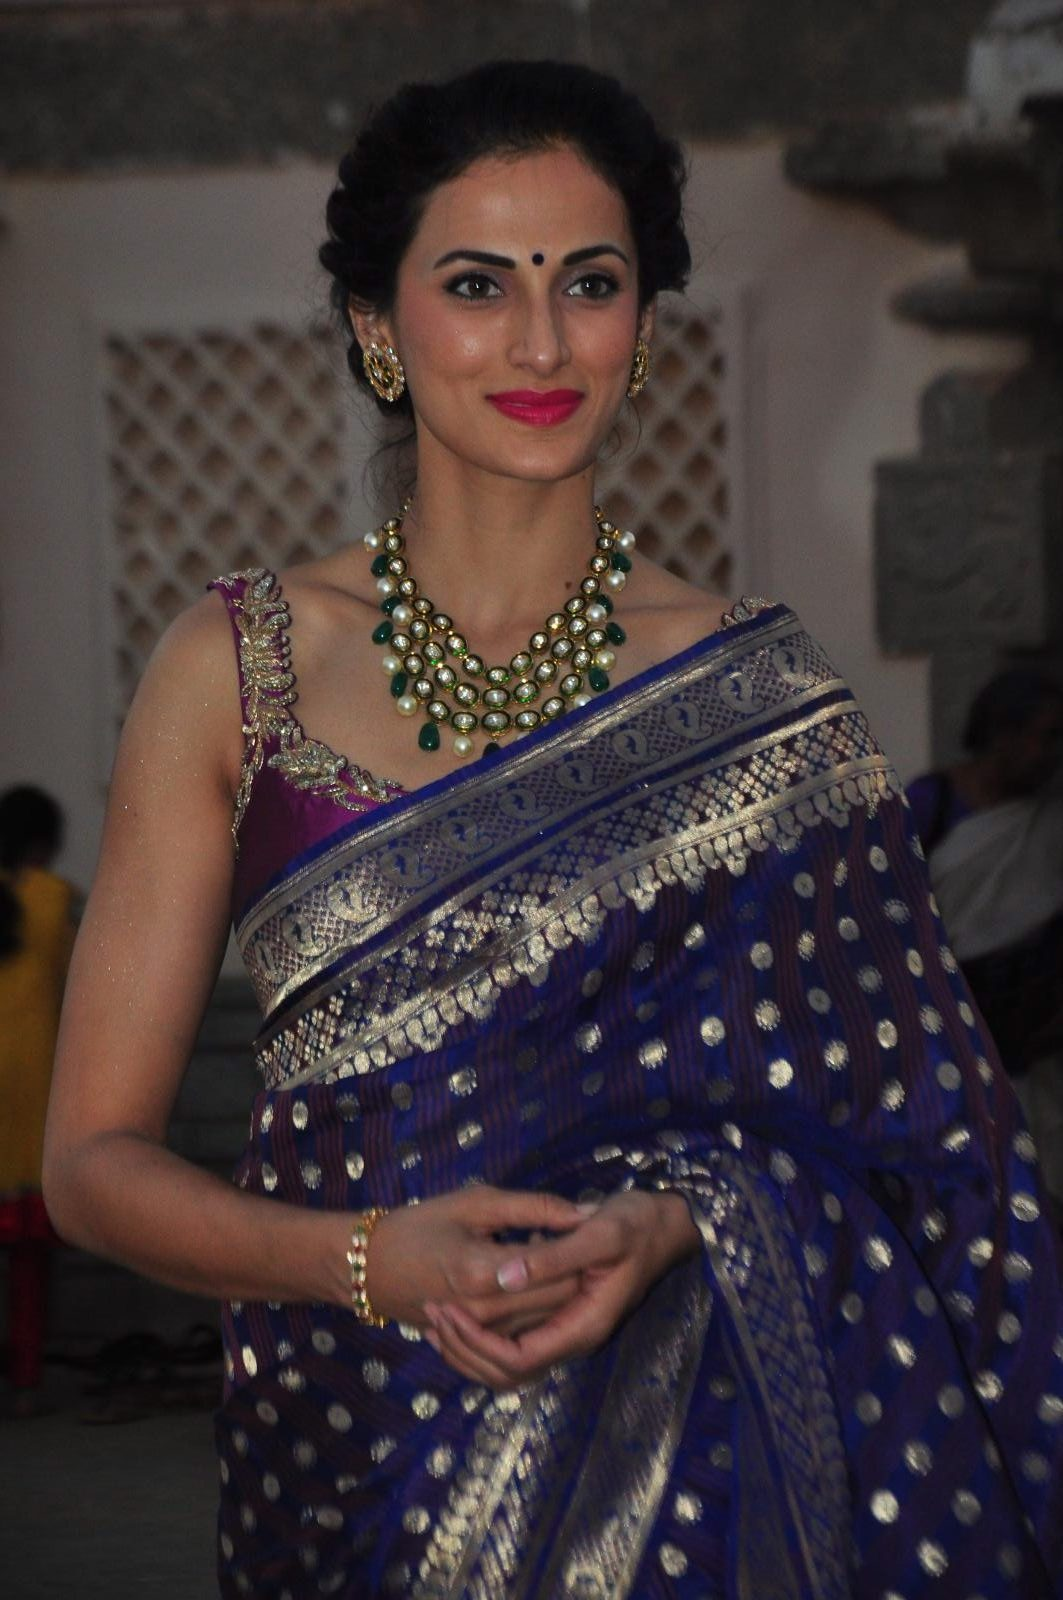 shilpa reddy Brand New Photo Stills of Beautiful Shilpa Reddy | Fashion | Modelling Shilpa Reddy 147 e1485252065297